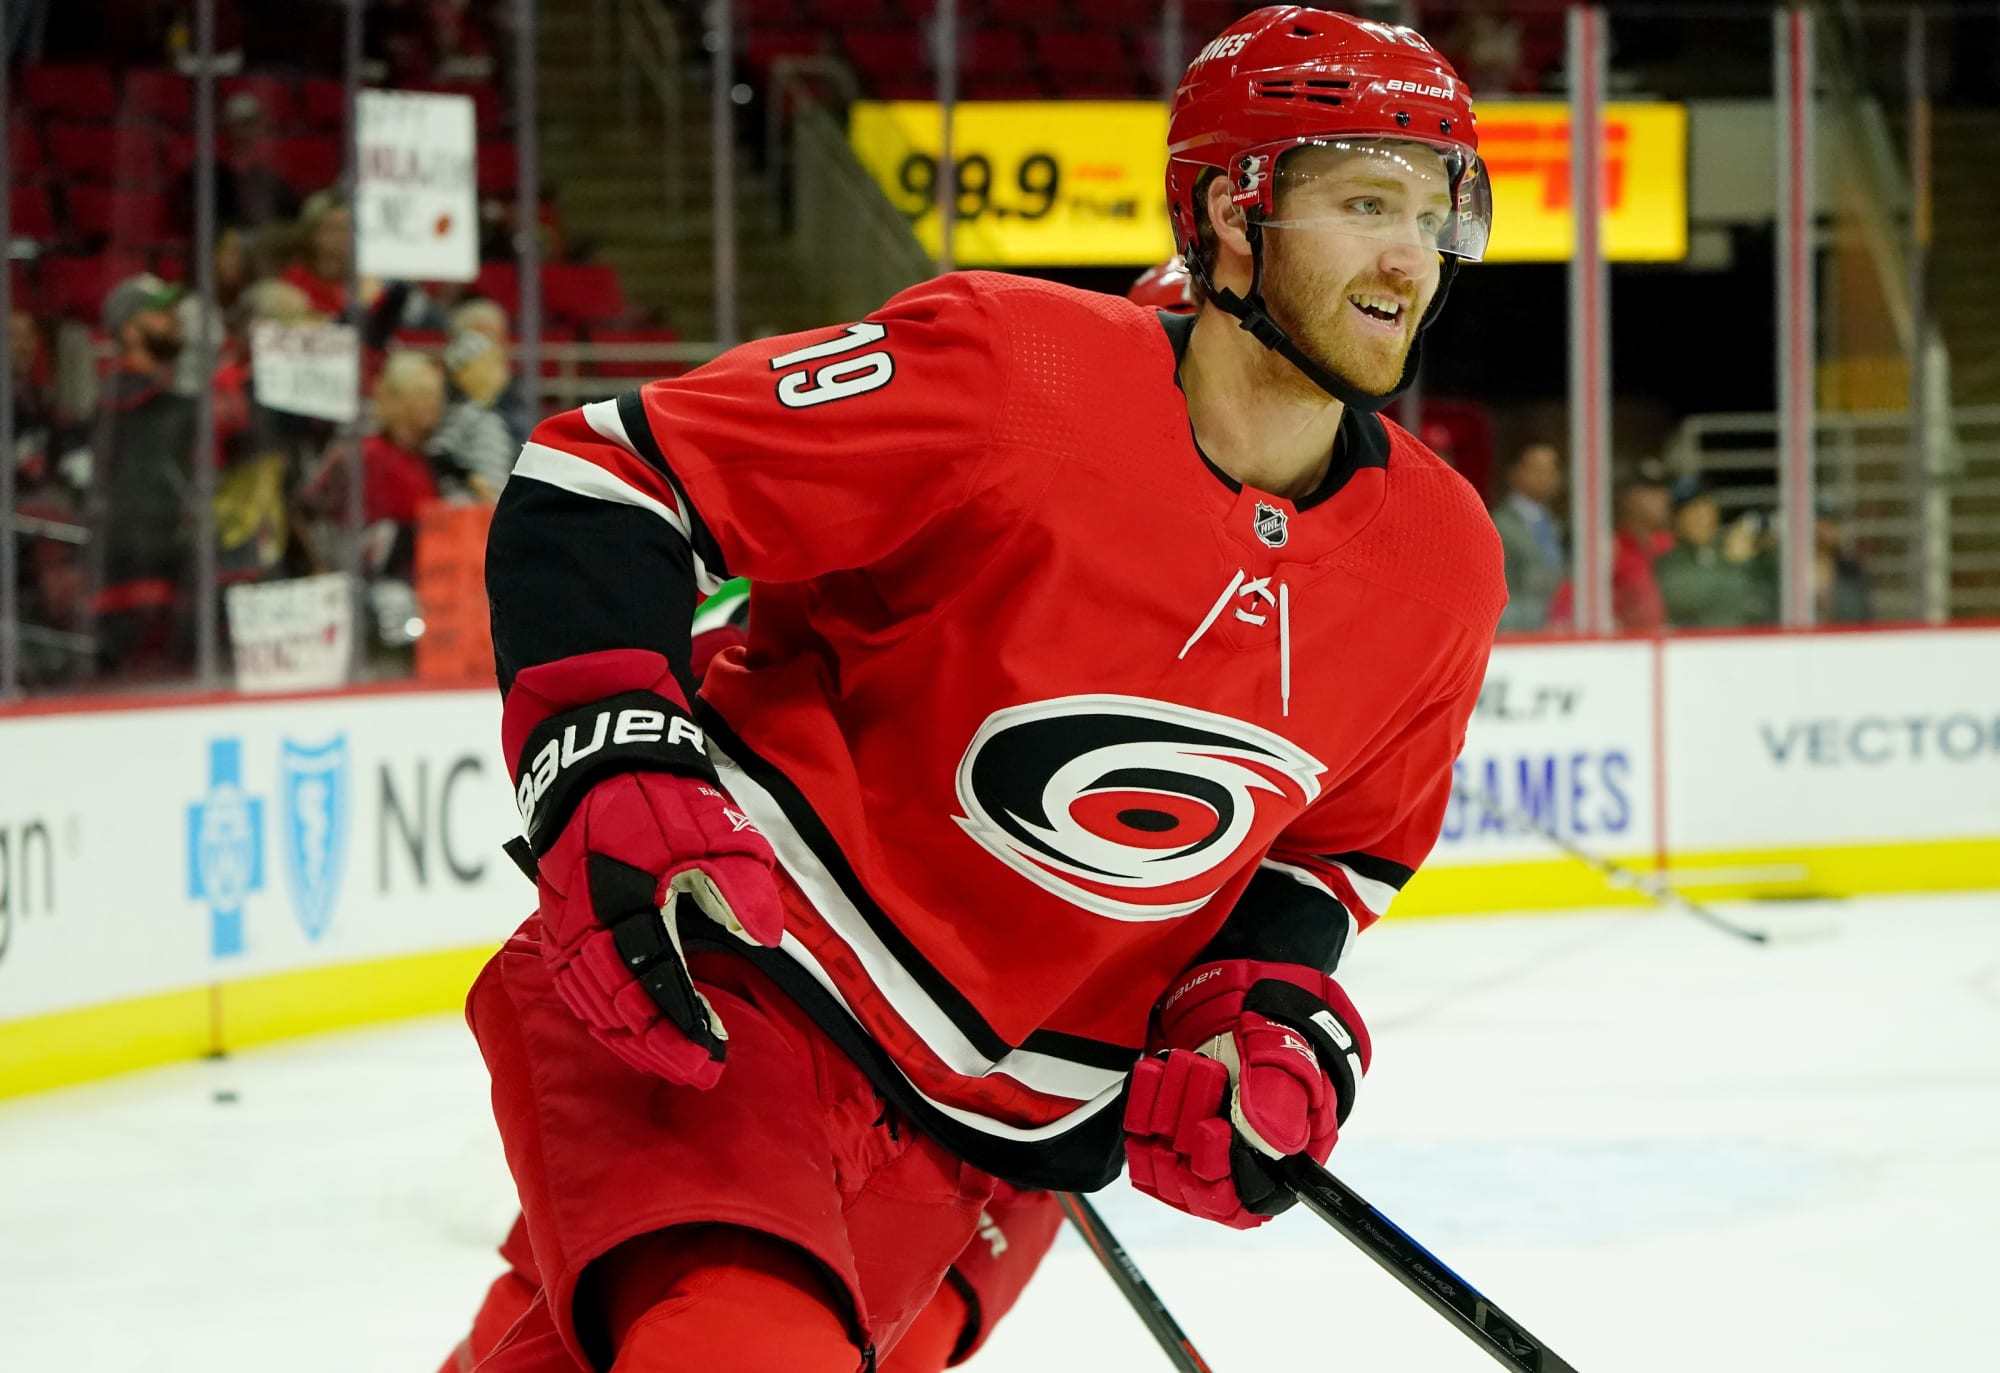 Carolina Hurricanes: The Players are Back on the Ice